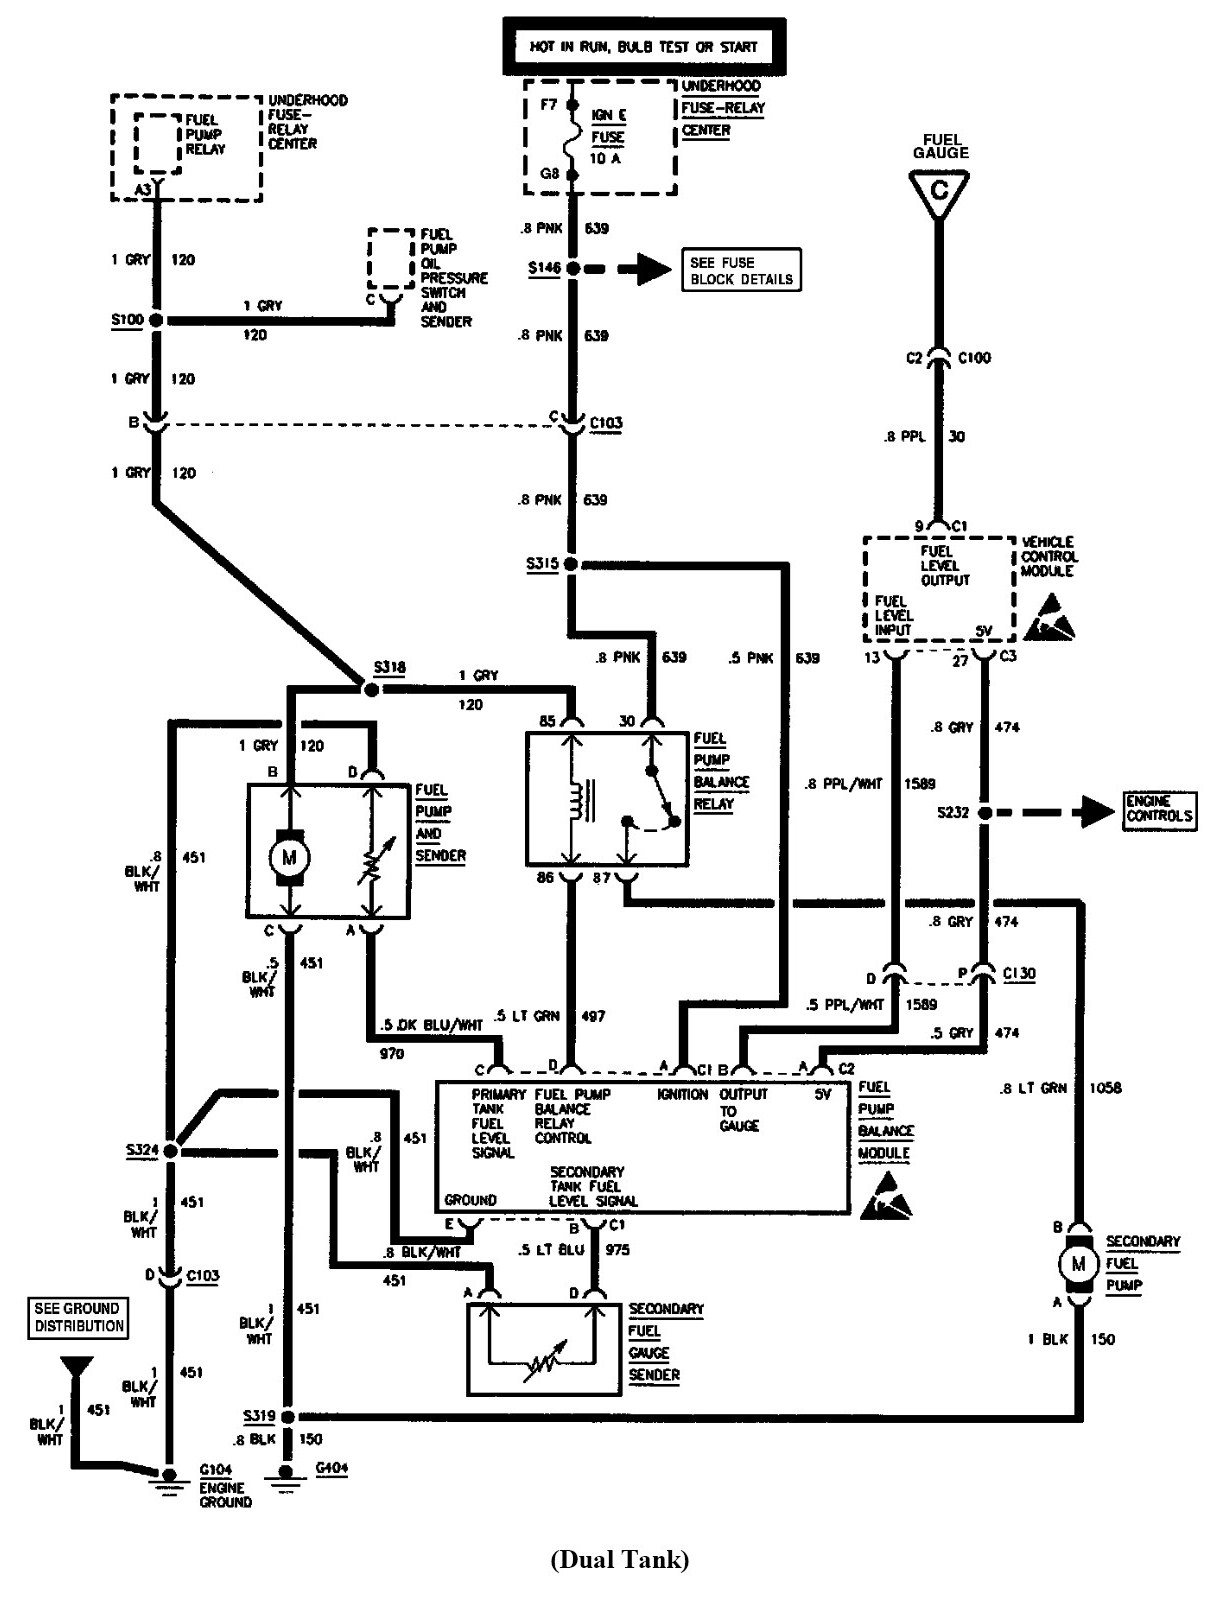 Delphi Fuel Pump Wiring Diagram from ww2.justanswer.com